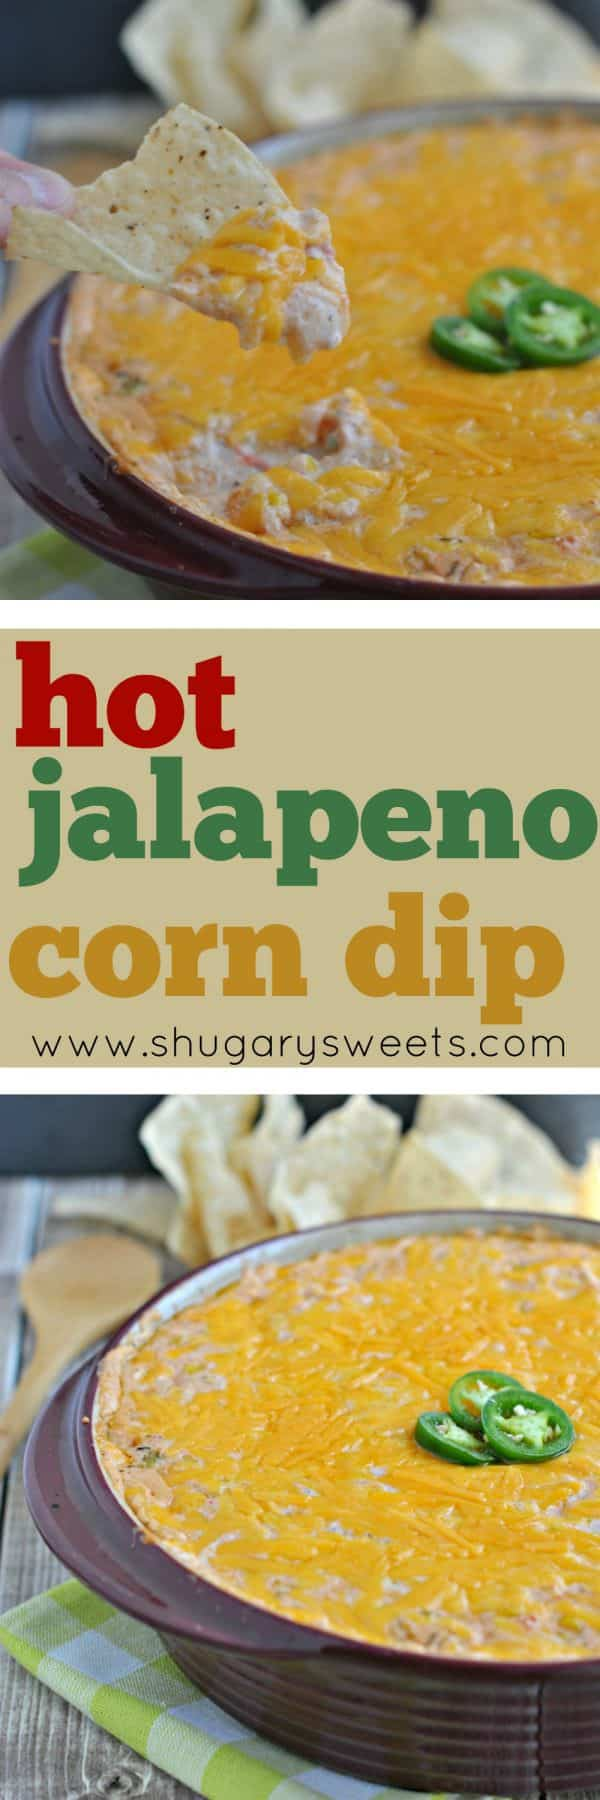 This delicious snack is perfect for your weekend potluck, game day tailgating party, or movie night. Hot Jalapeno Corn Dip is easy to make, and you won't be able to stop dipping!